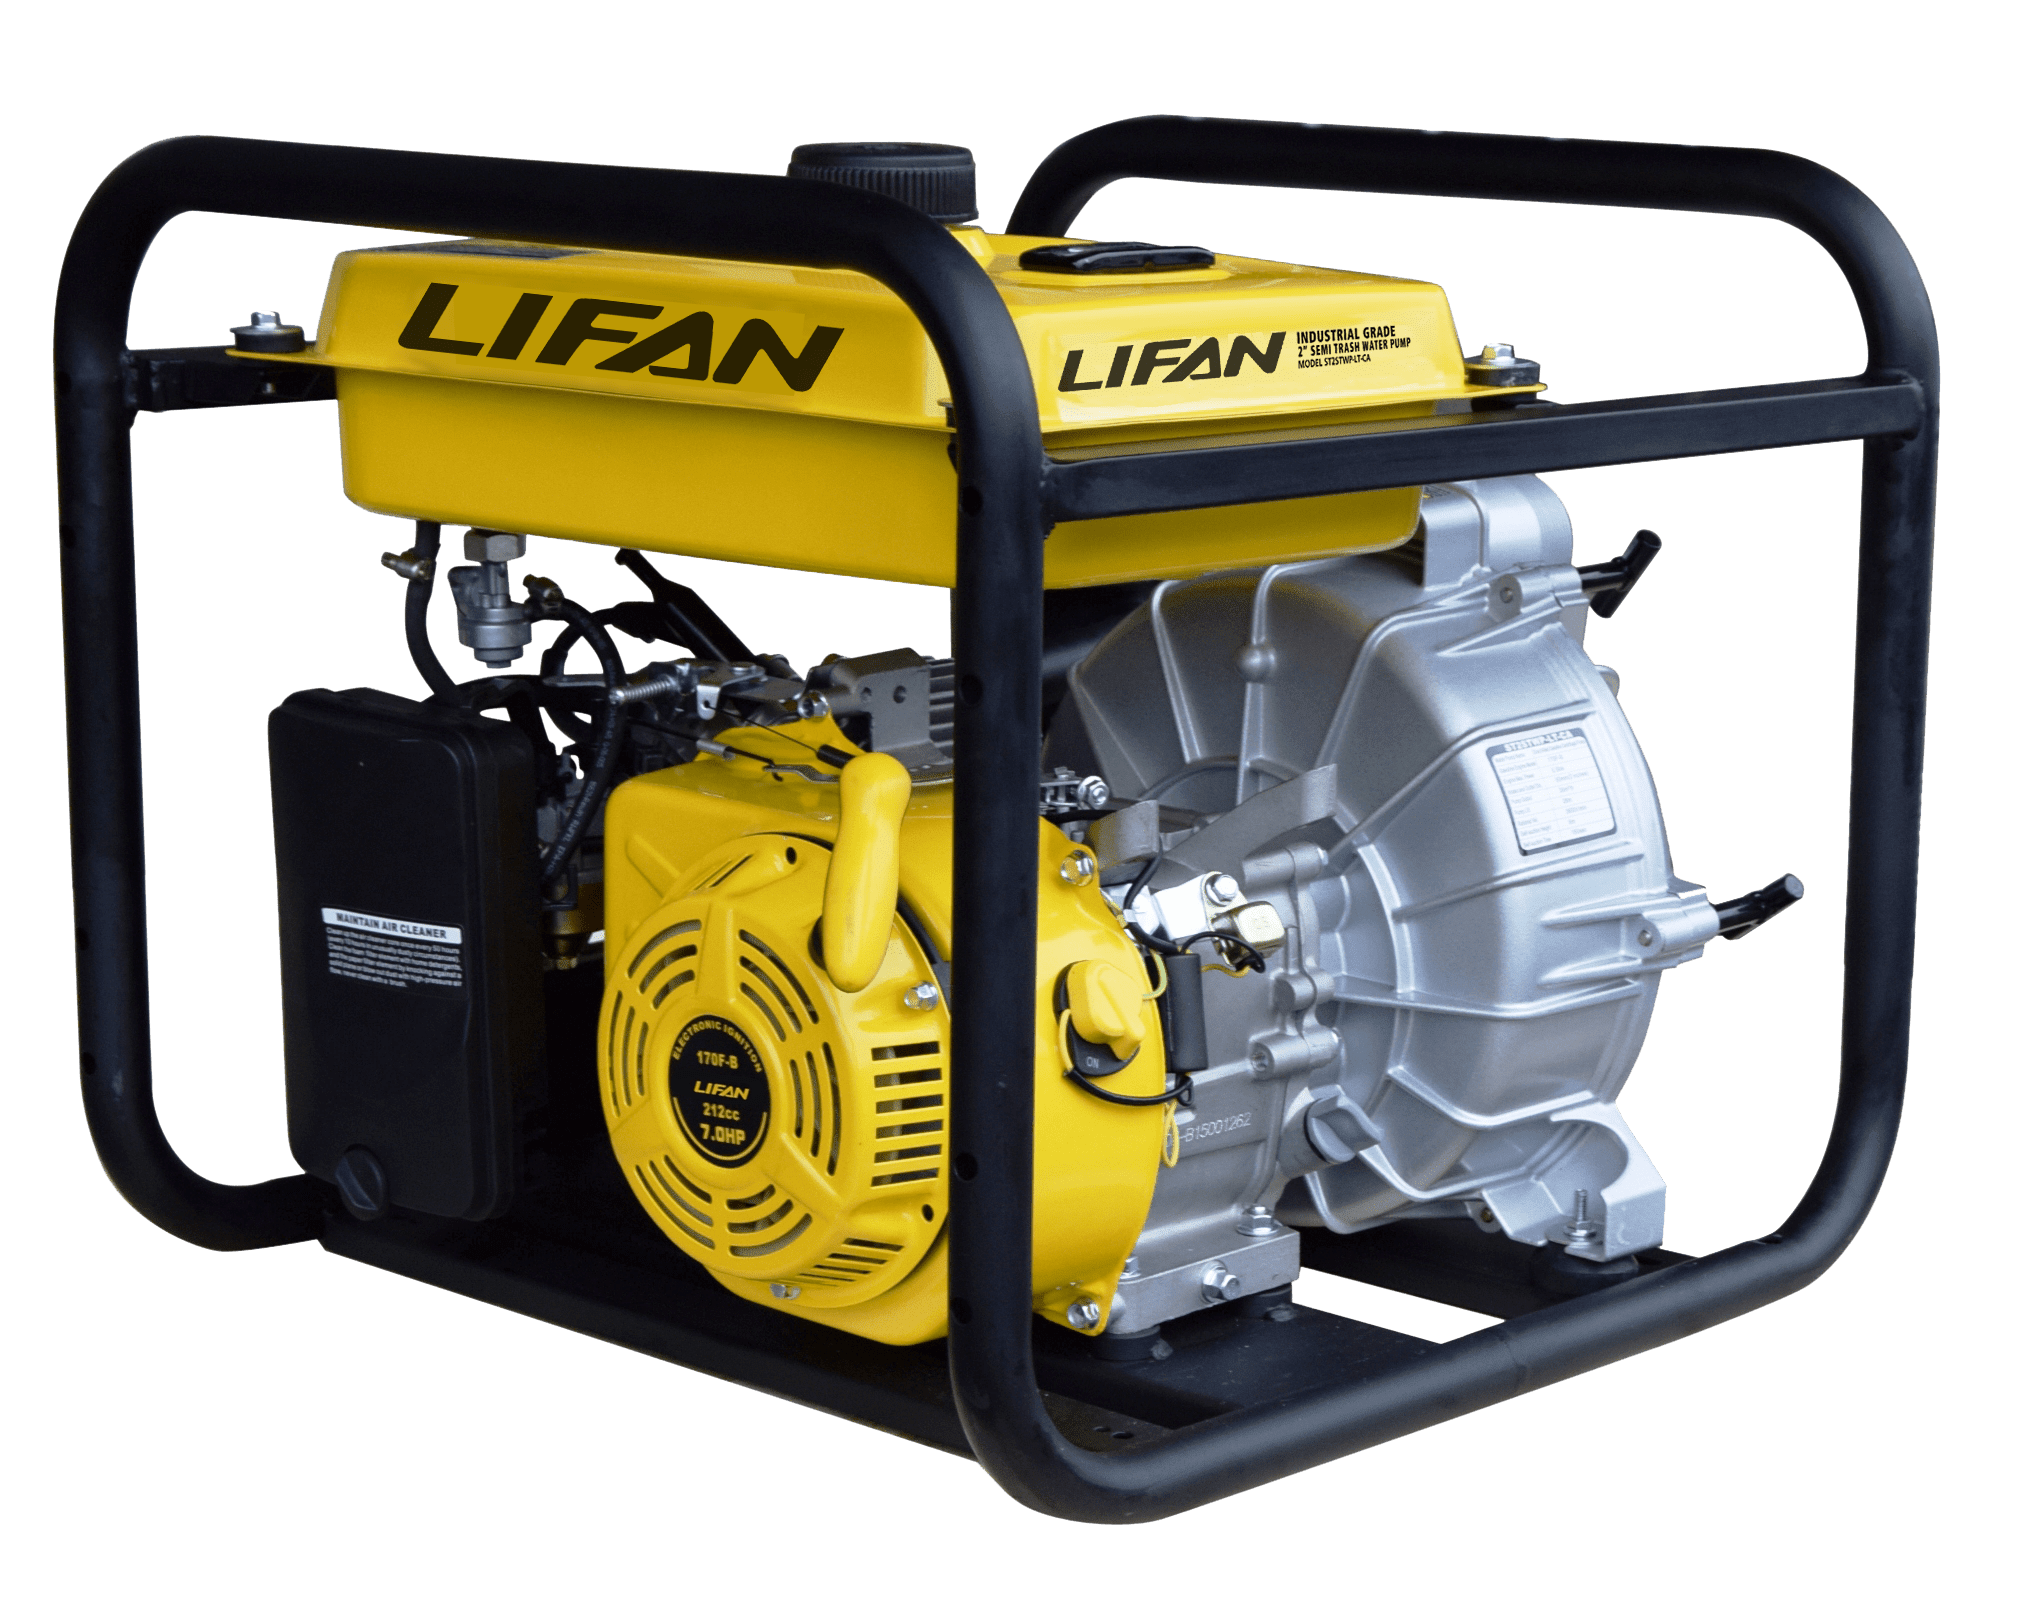 Lifan Pump Pro specialty water pumps use LIFAN's Industrial Grade OHV  Gasoline Engine and quality pump housing to fit any of your pumping needs.